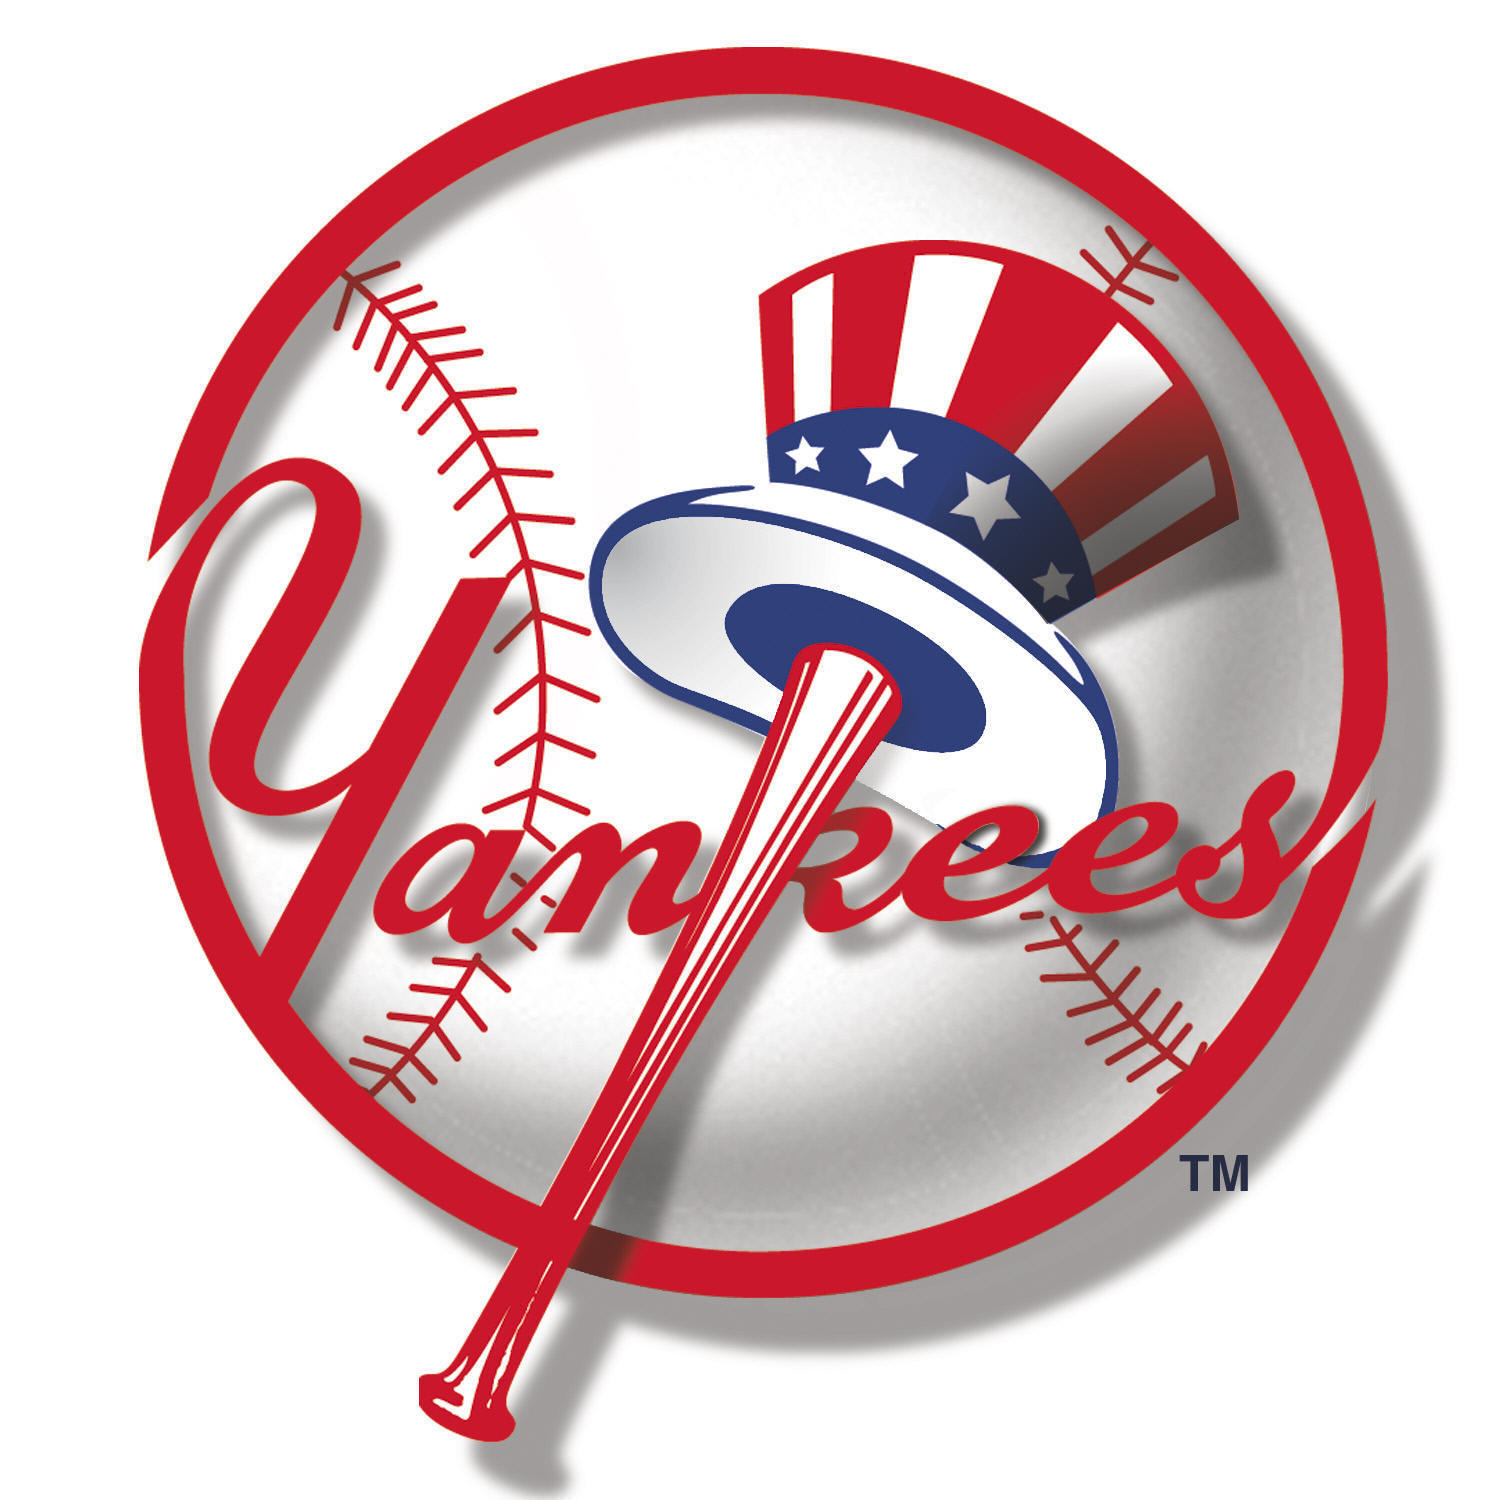 York Yankees winning the 2011 World Series would be good for baseball